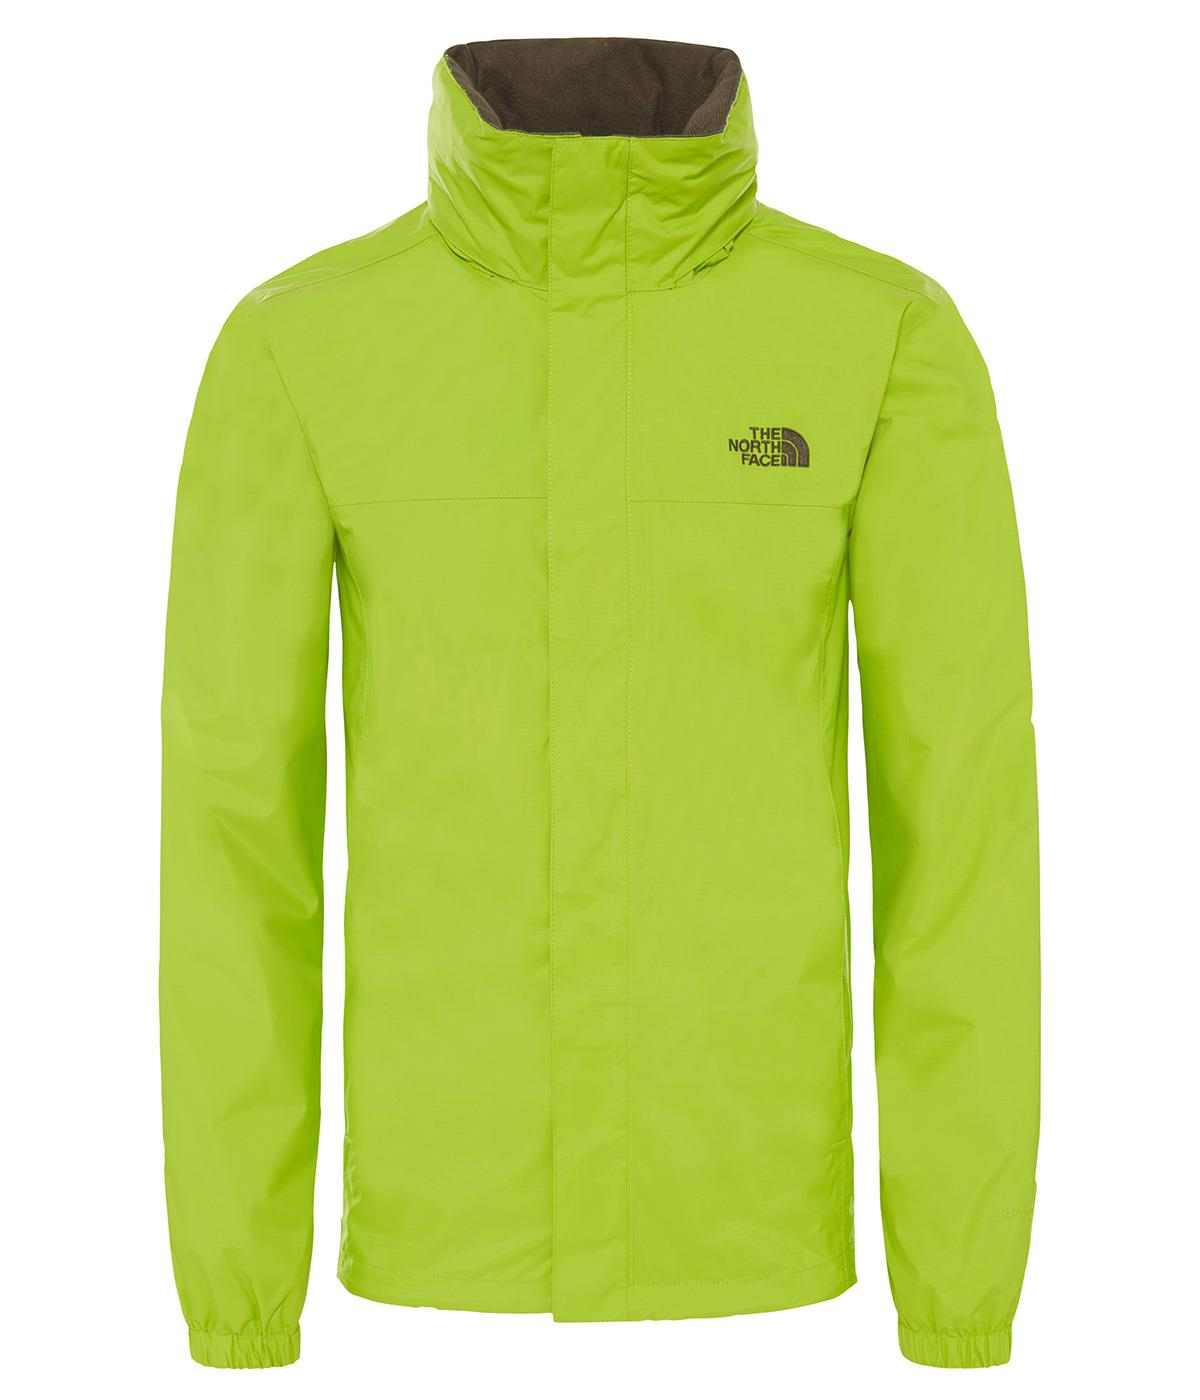 The Northface Erkek Resolve 2 Jacket T92Vd5B85 Ceket